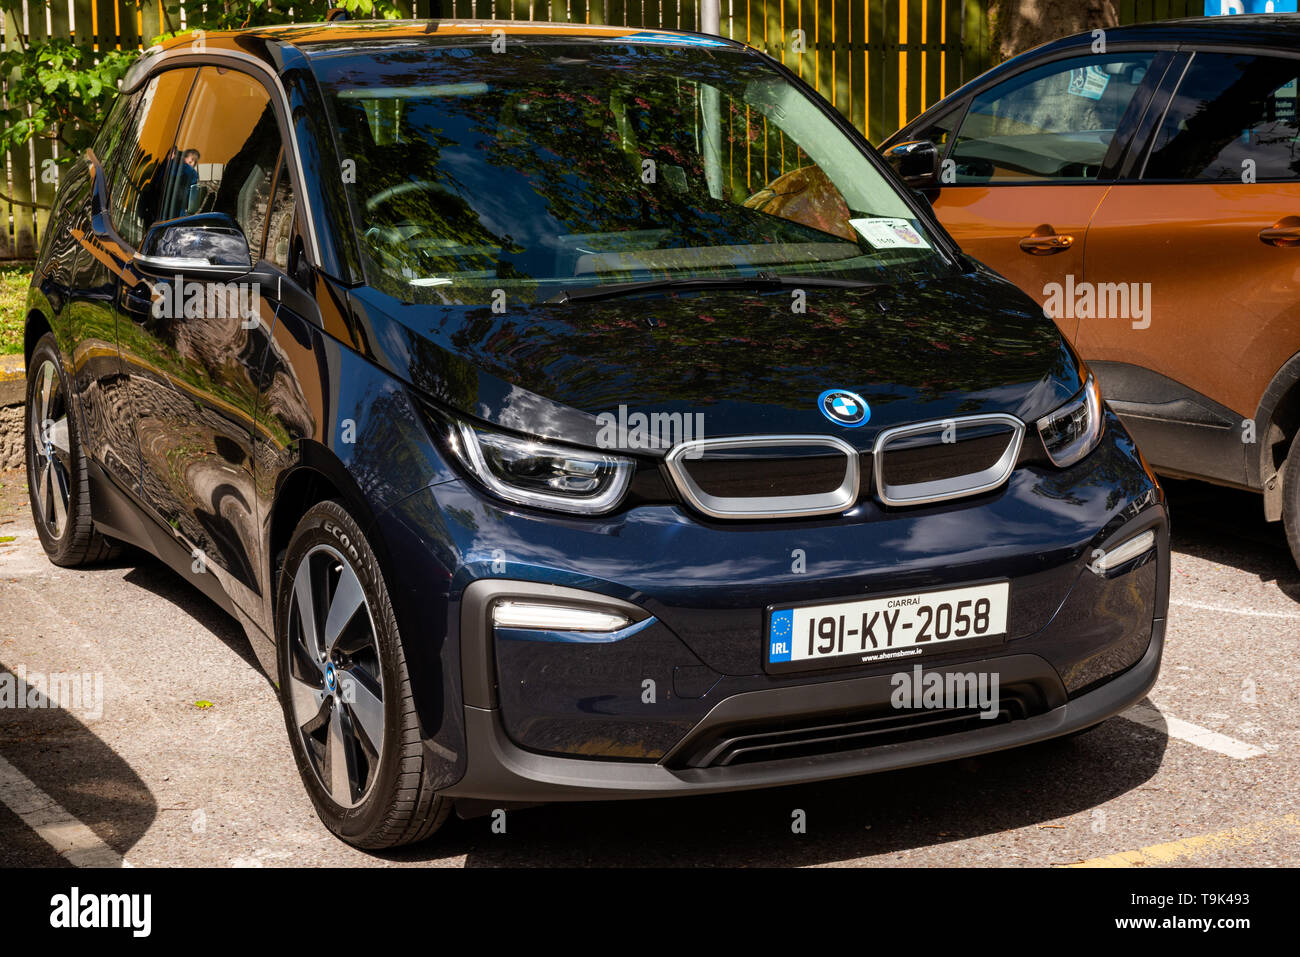 A brand new blue 2019 BMW i3 electric car automobile with Irish registration plate from County Kerry as parked on a street on sunny day. - Stock Image